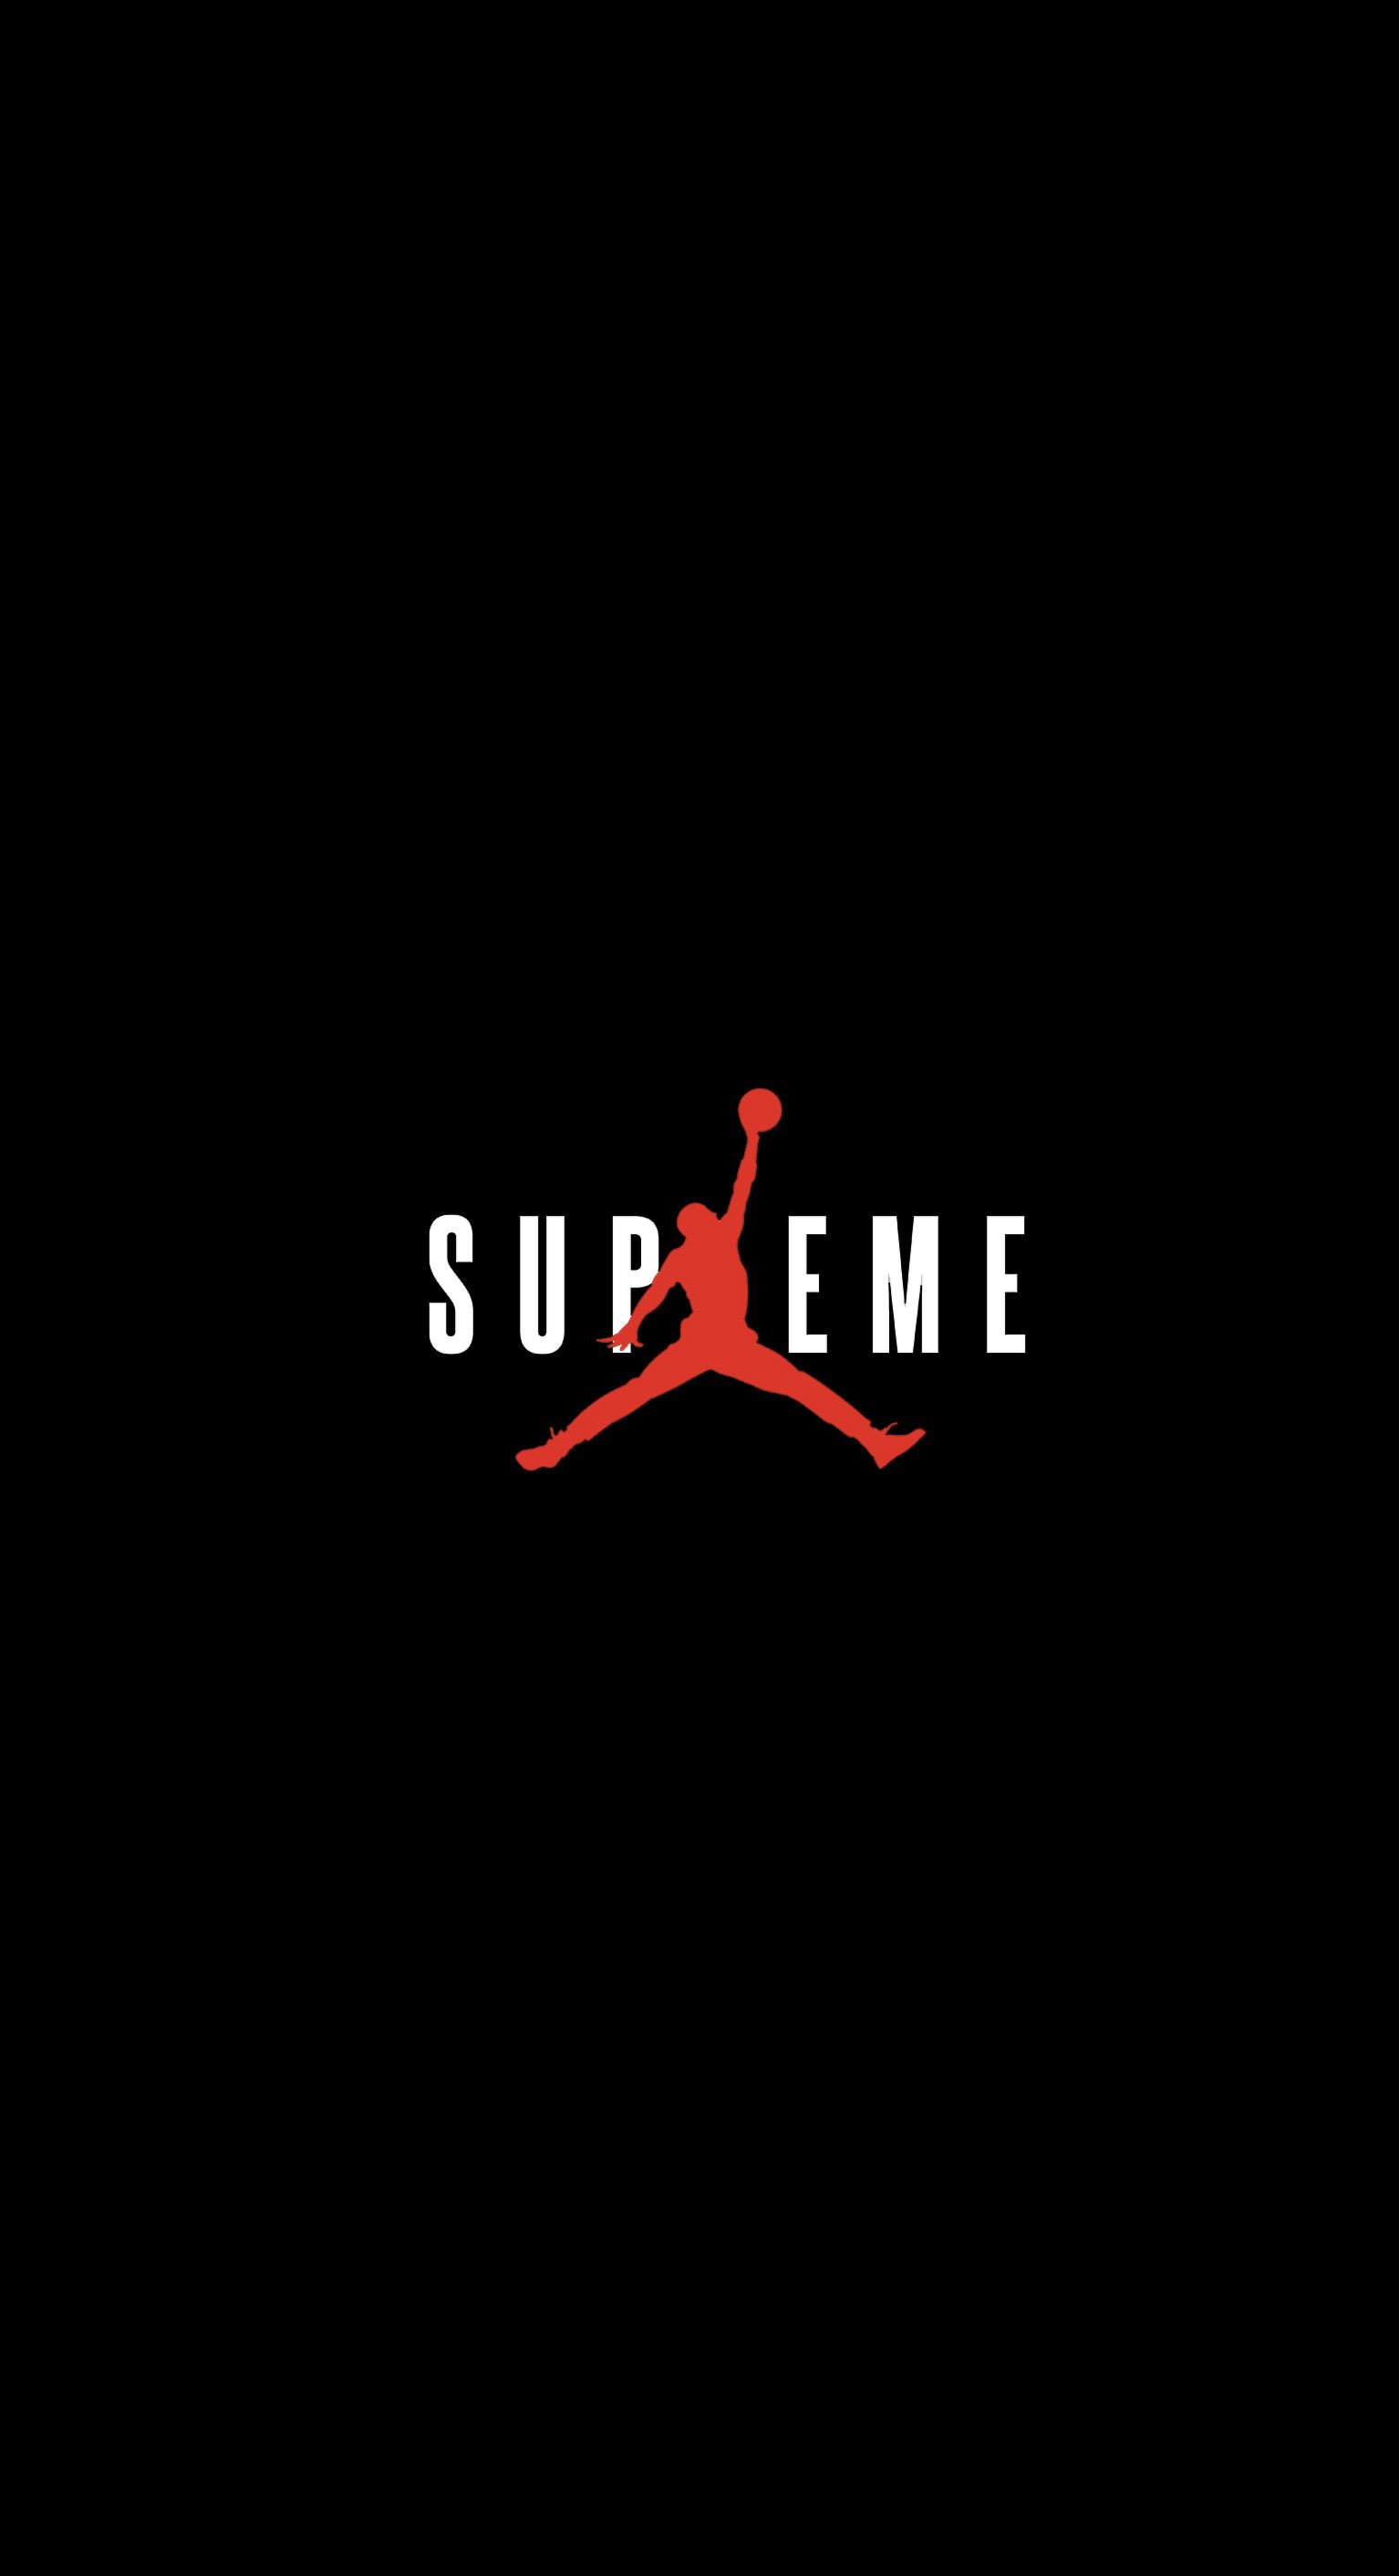 Supreme Wallpapers the best 79 images in 2018 1534x2824